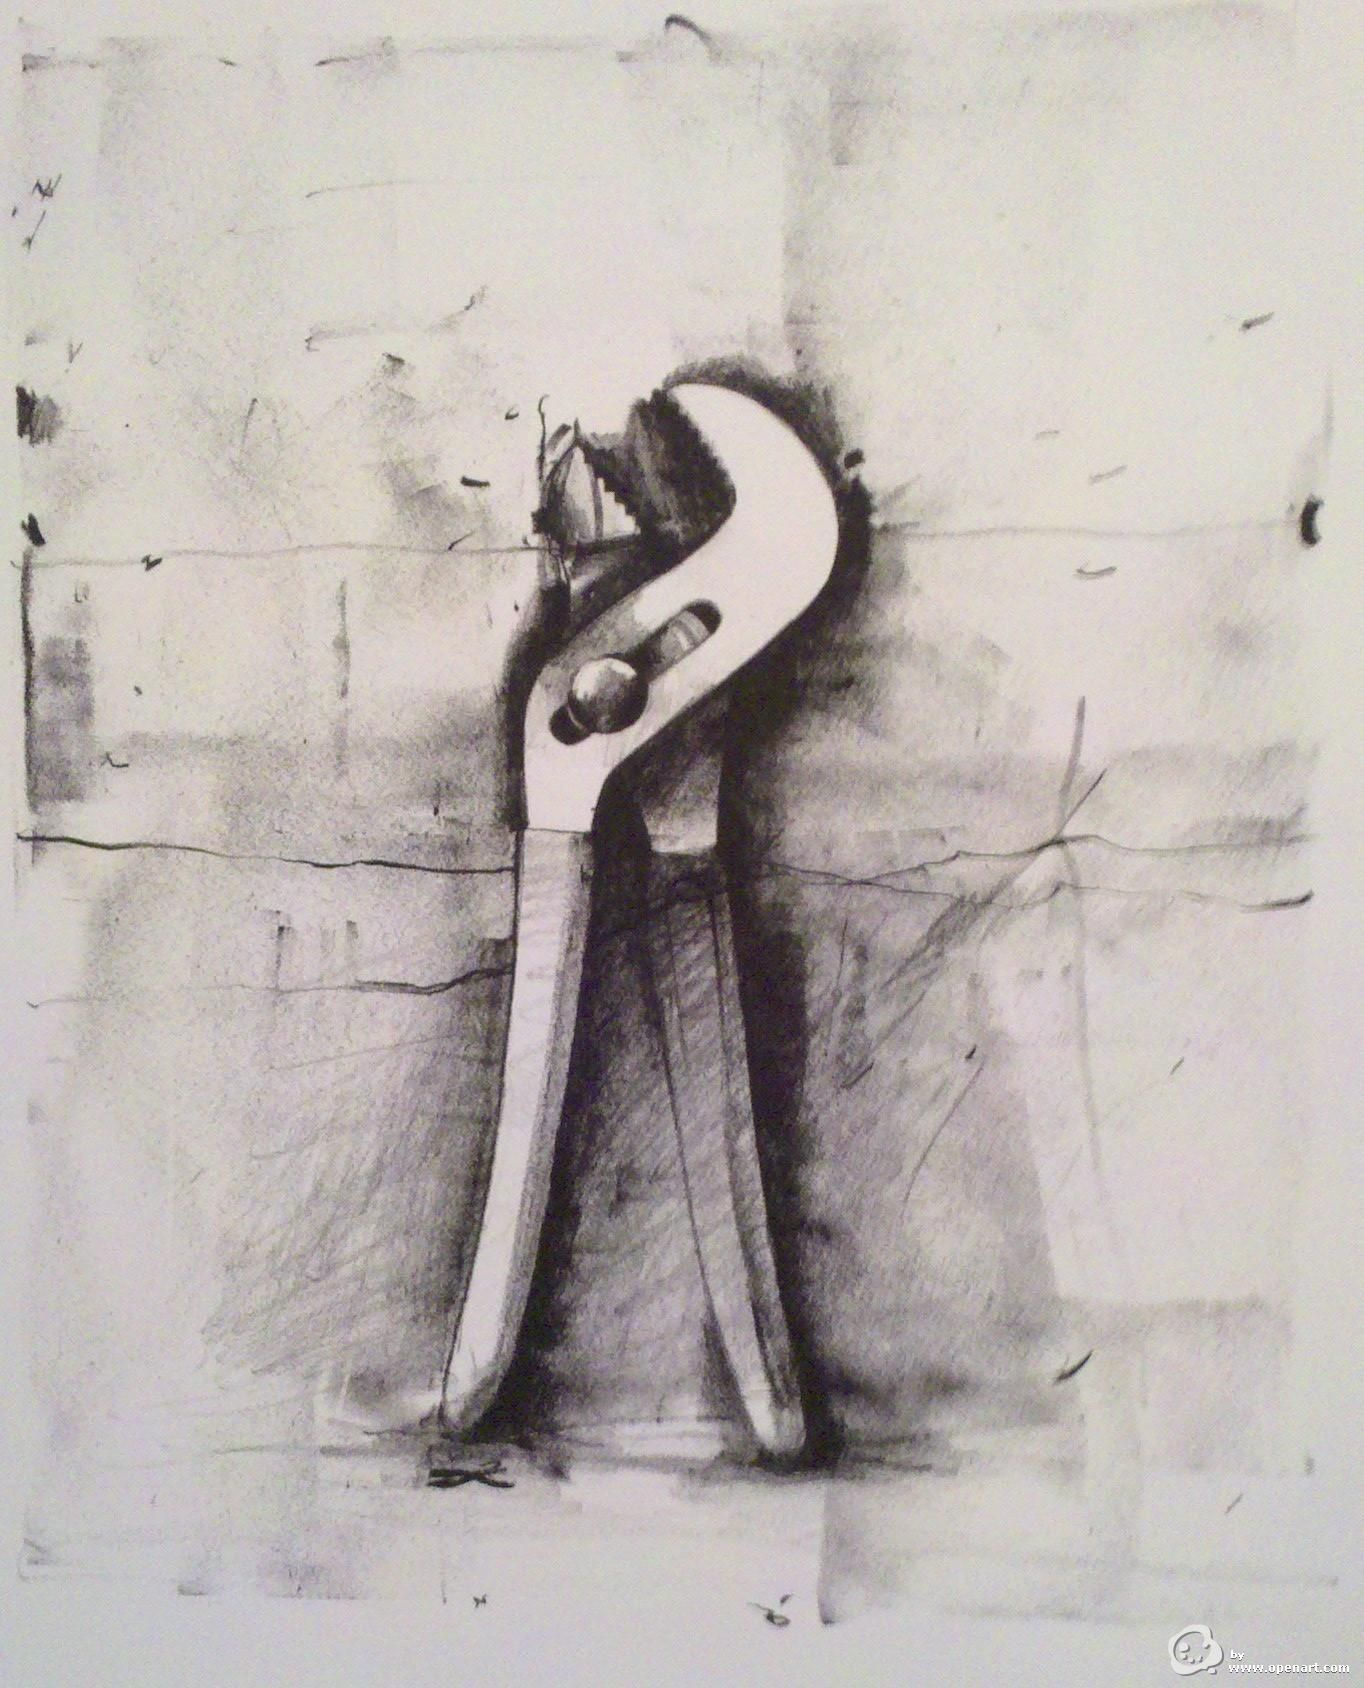 jim dine | Artists-Painters | Pinterest | Artworks, Pencil ...